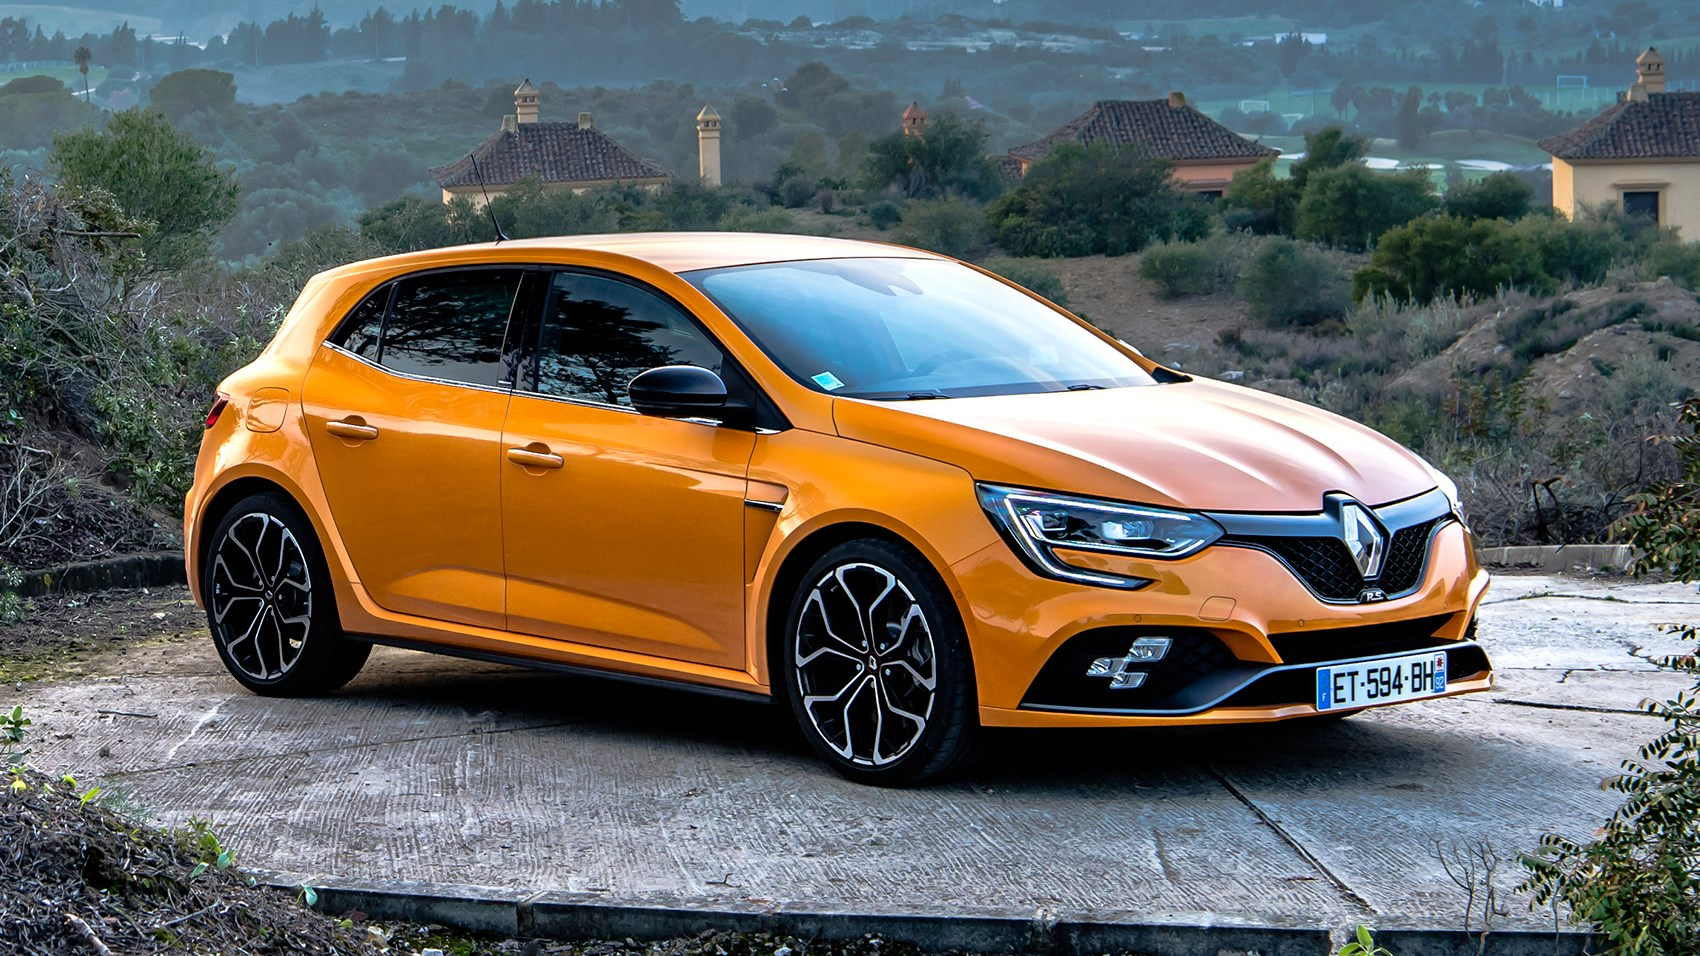 Renault Megane R S 2019 Review Every Model Tested Car Magazine